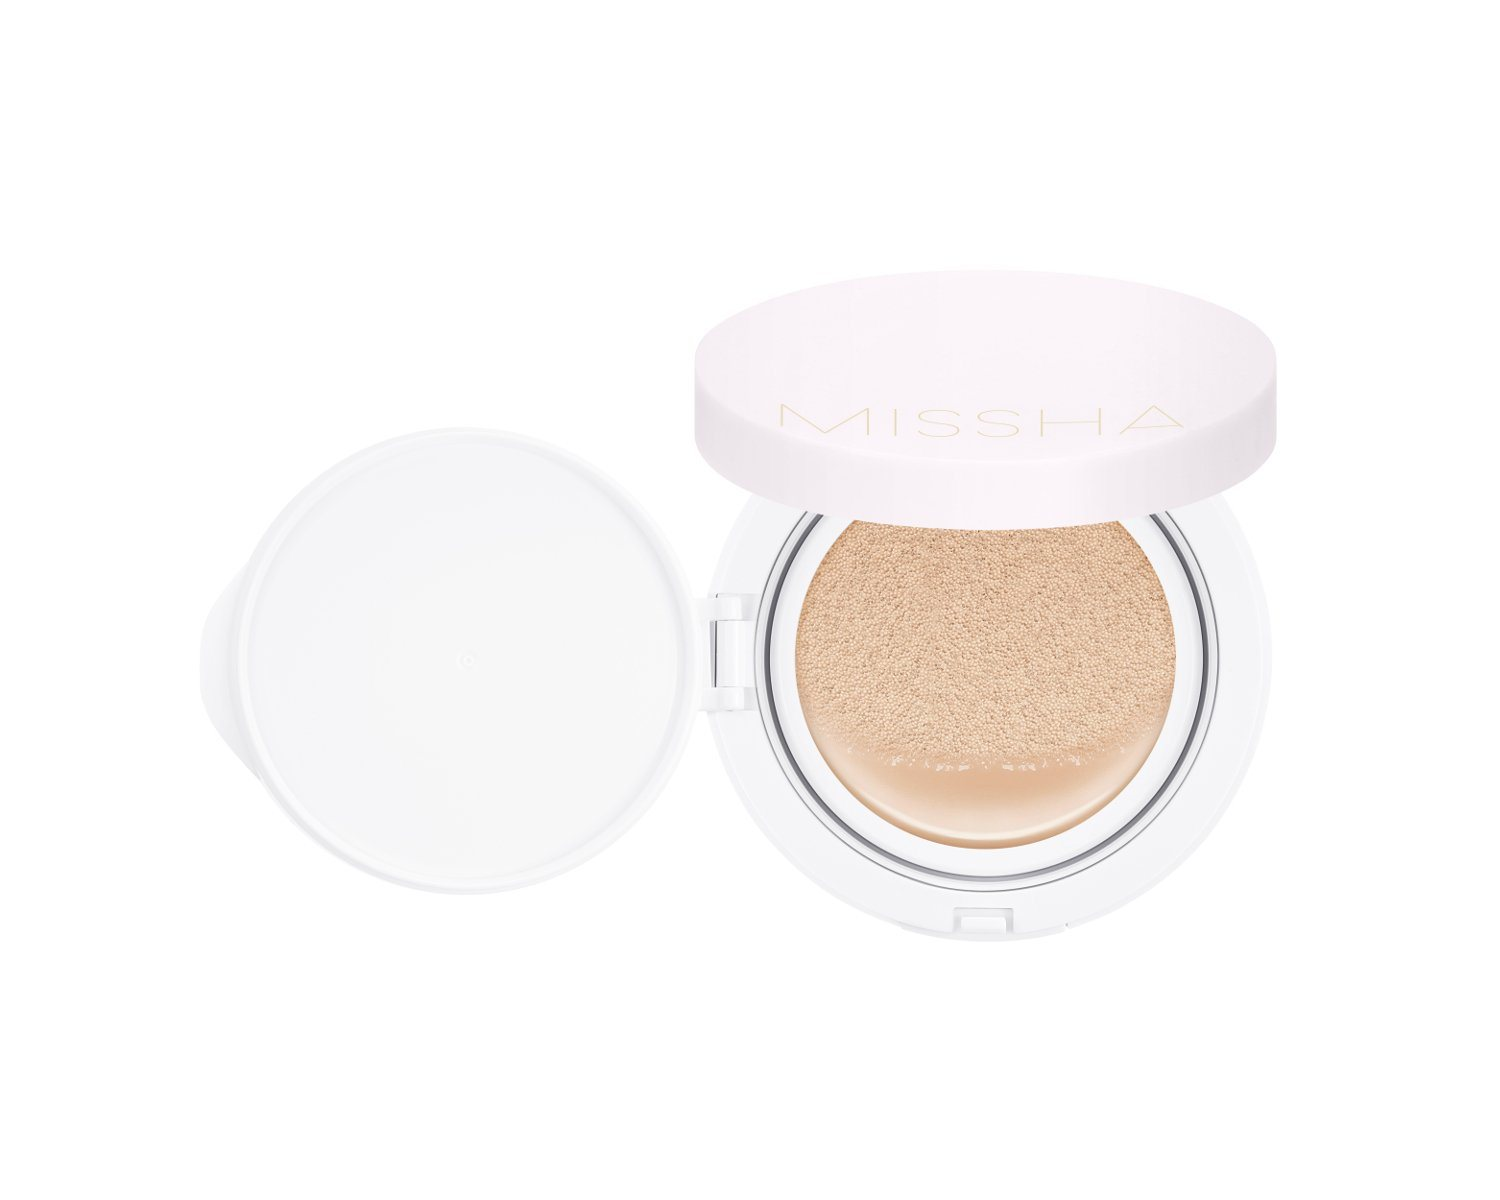 Health & Beauty > Personal Care > Cosmetics > Makeup > Face Makeup > Foundations & Concealers - Magic Cushion Cover Lasting (21) Podkład W Kompakcie 15 G